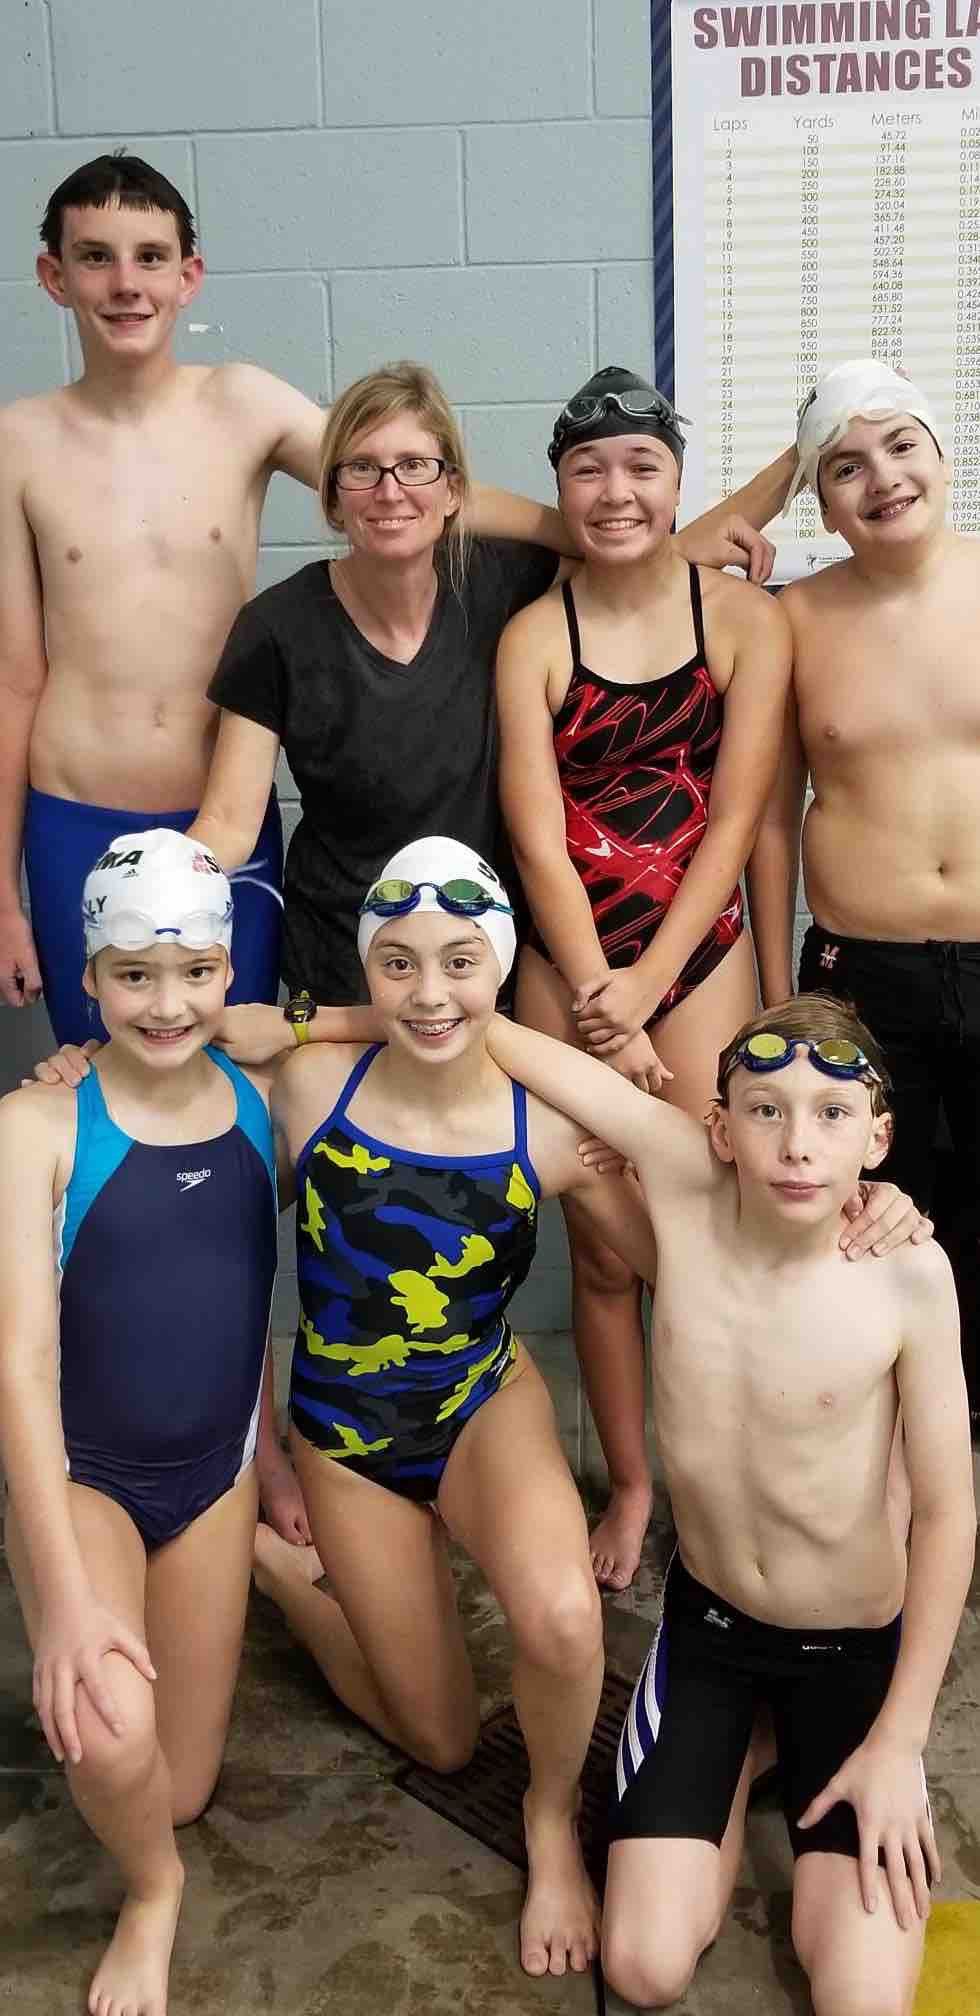 Coach Jill with some of her swimmers from Sigma Swim Fort Worth North